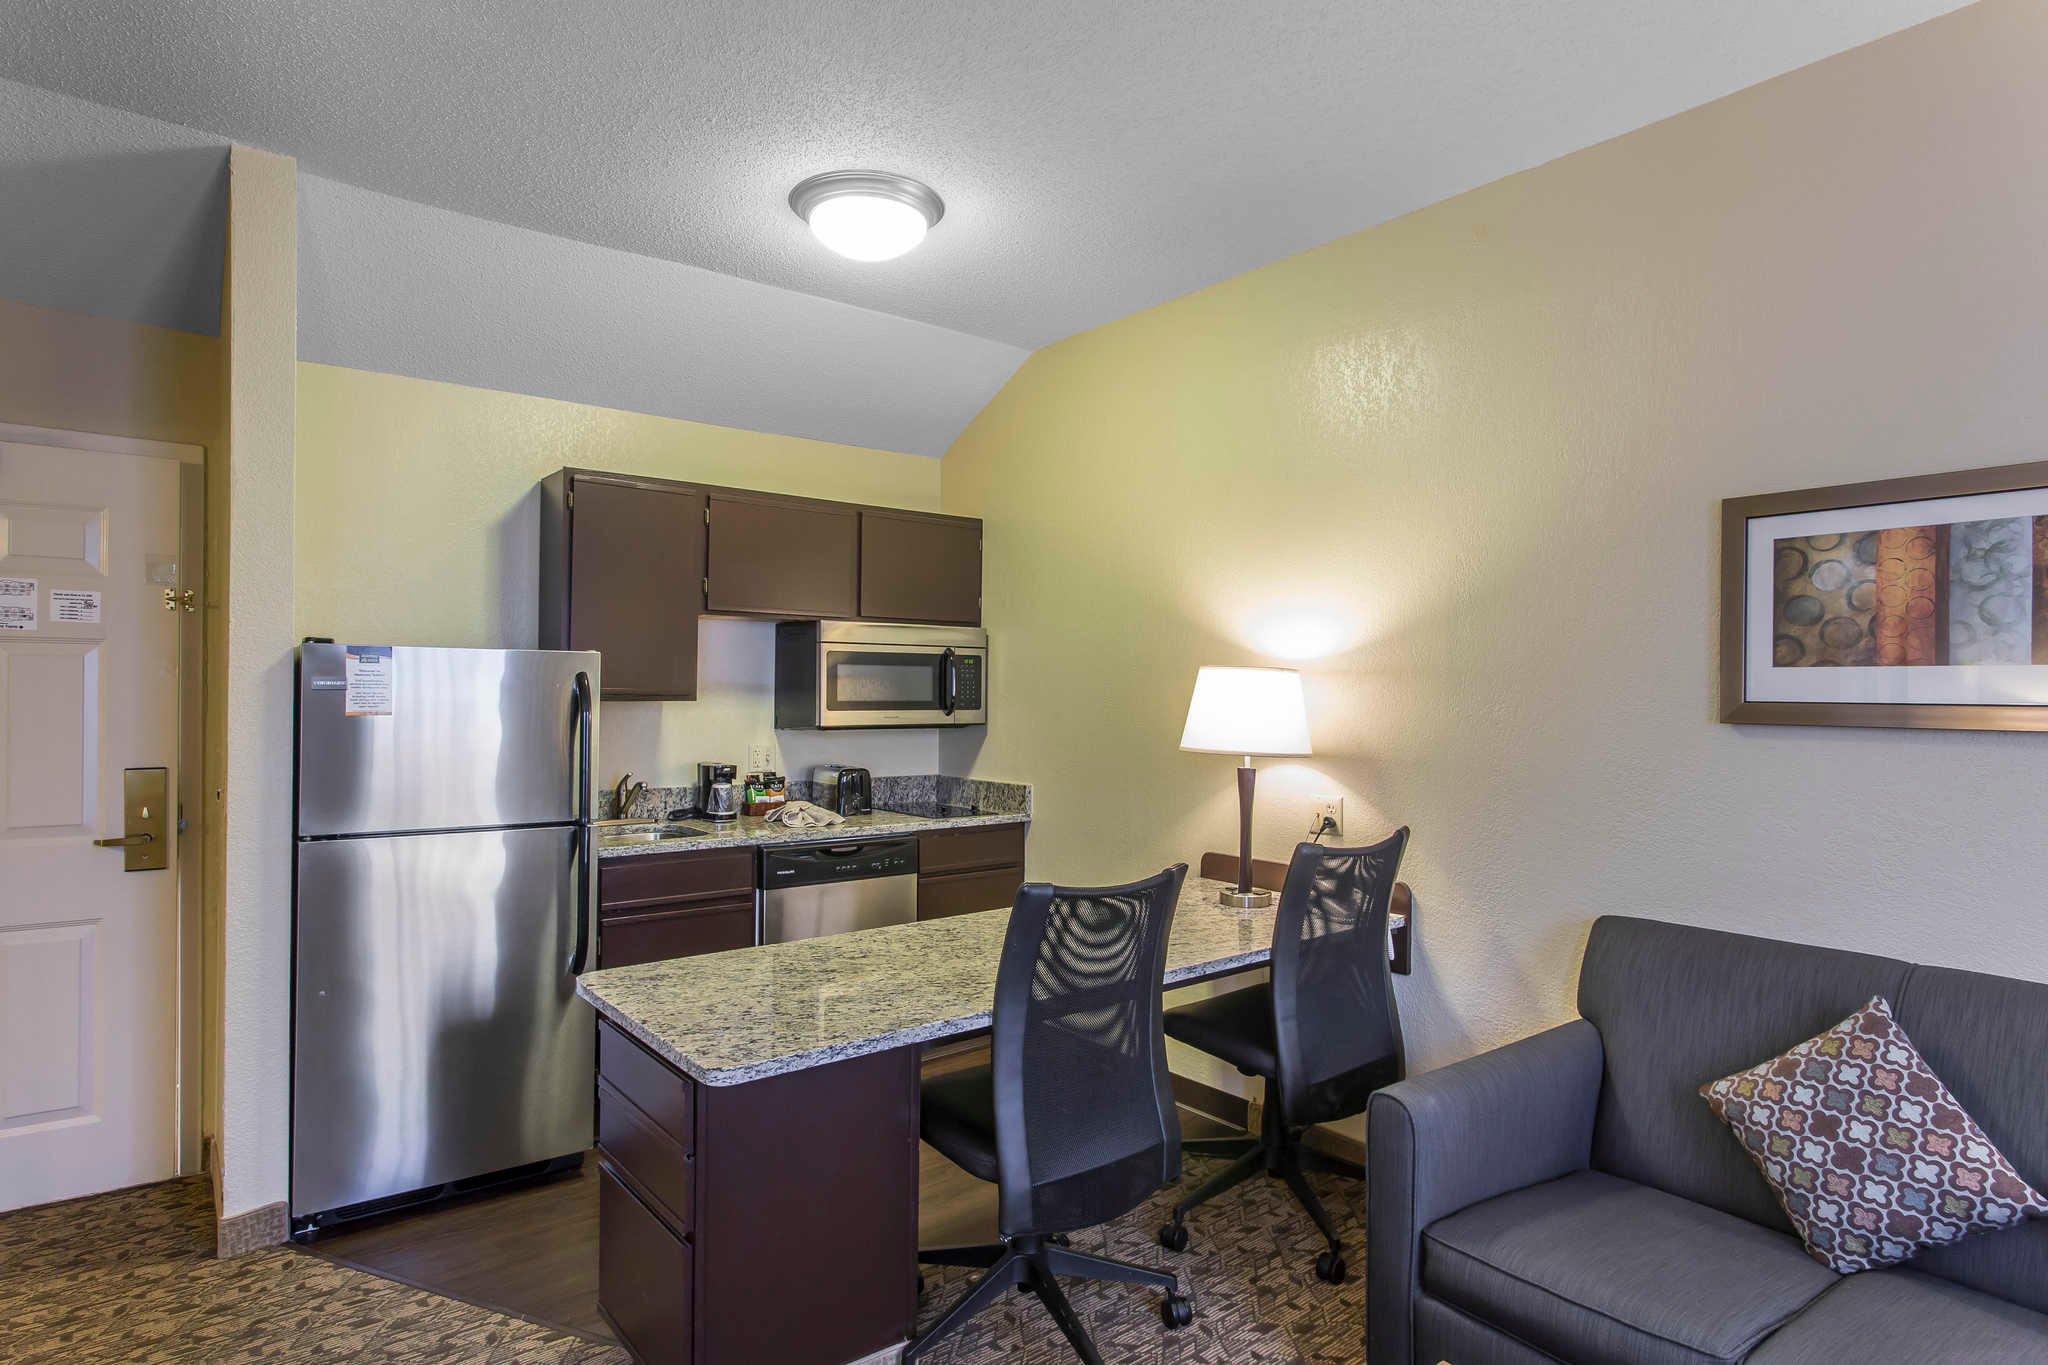 MainStay Suites image 18